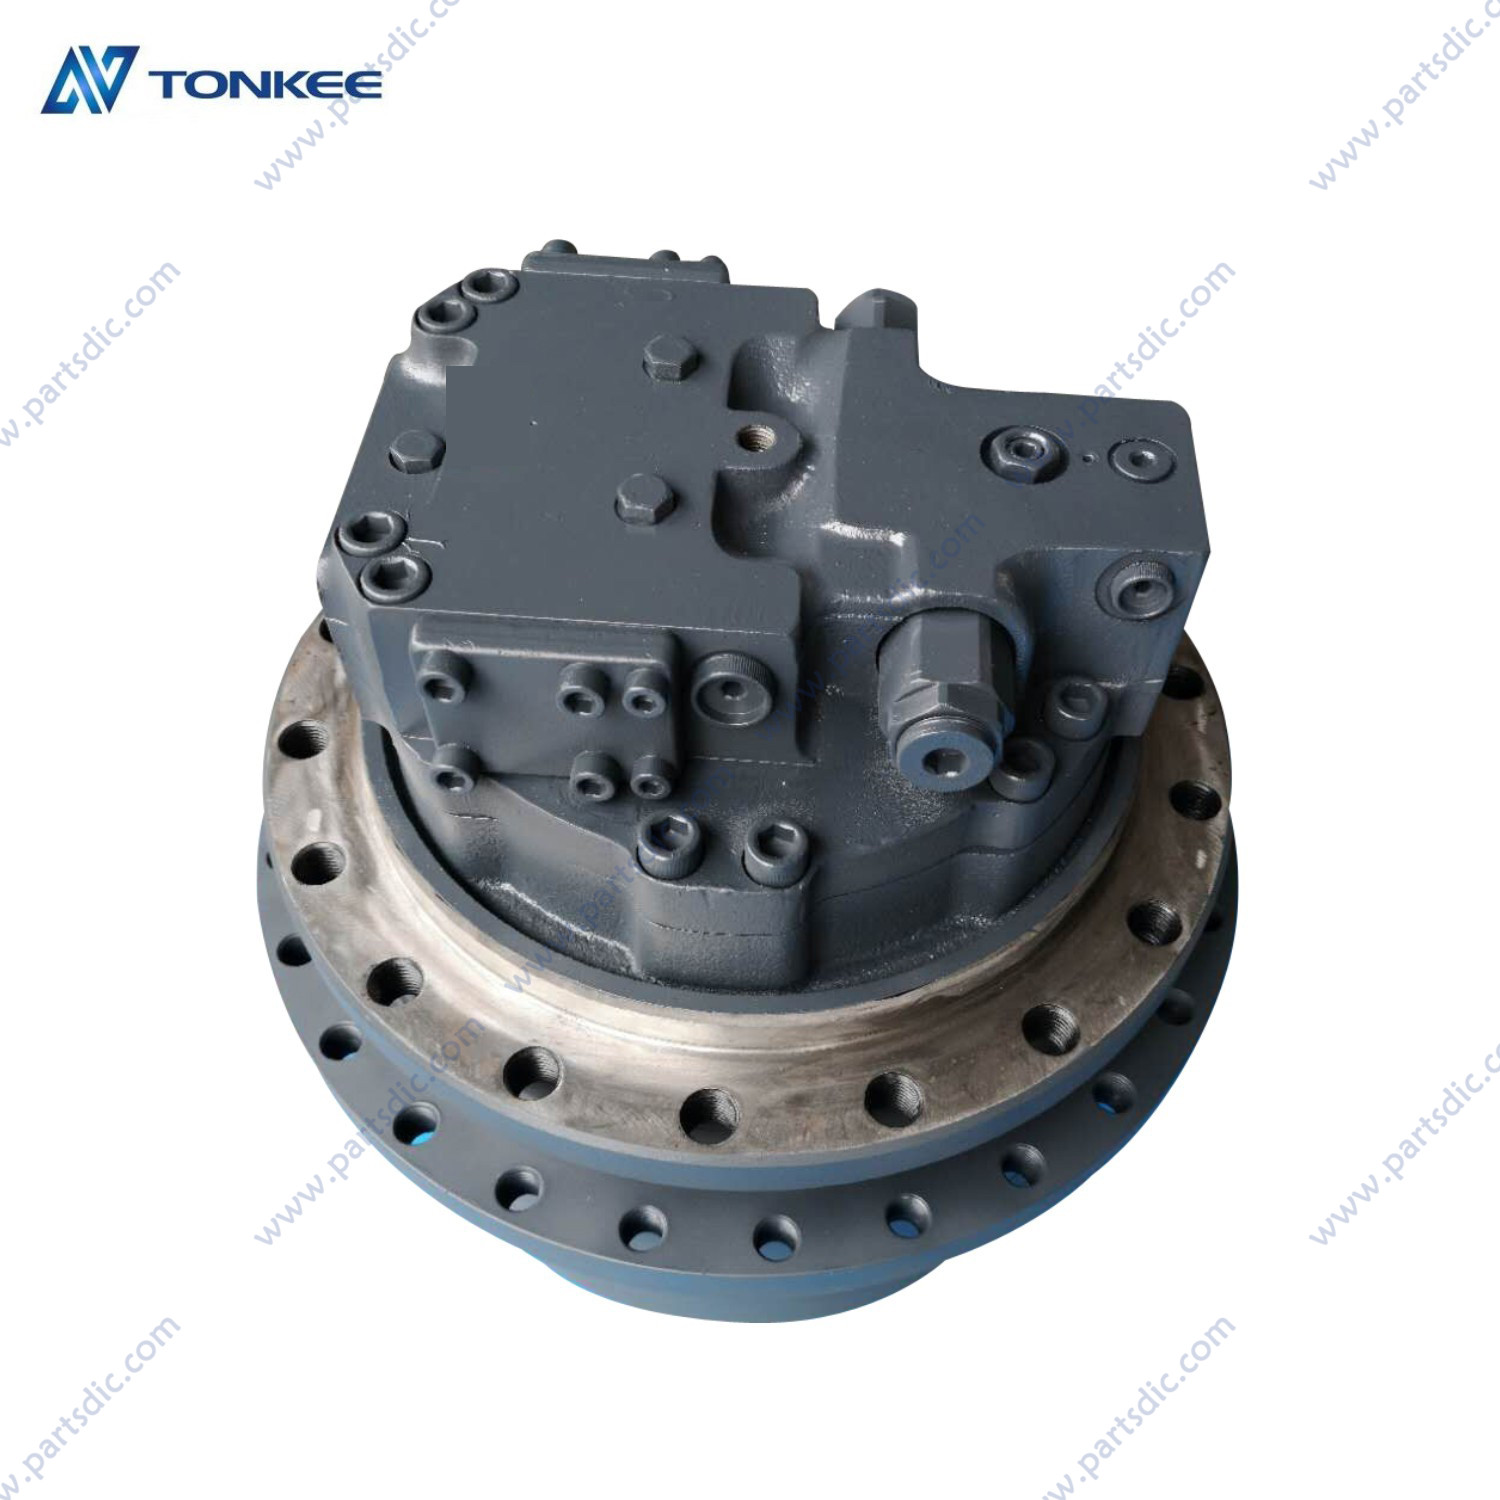 Robex330LC R330 R330LC-9Sfinal drive group 31Q9-40032travel motor assy excavator  suitable forHYUNDAI excavation